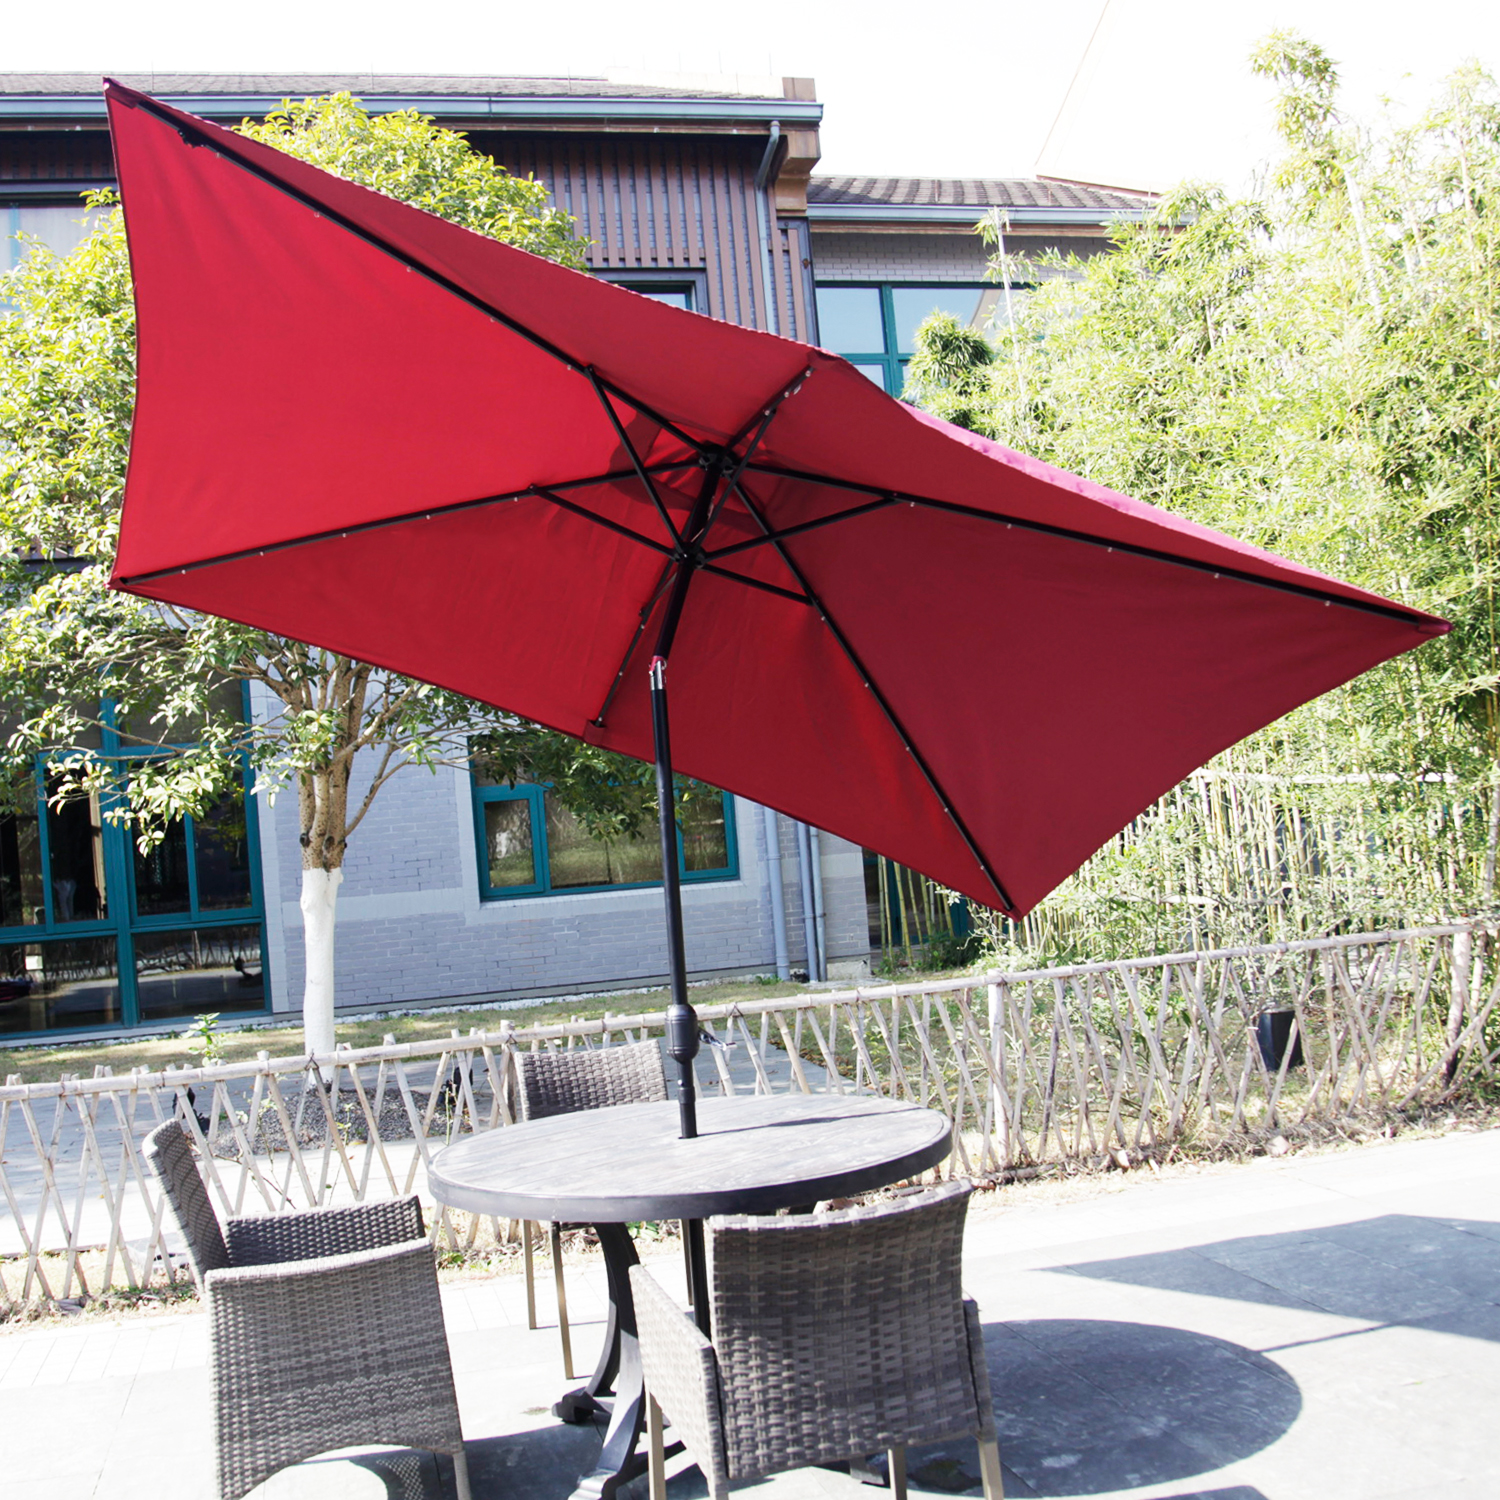 Kinbor Rectangular Outdoor Table Aluminum Solar Powered LED Lighted Patio Umbrella Window Awning  Garden Furniture 6 Metal Ribs Red